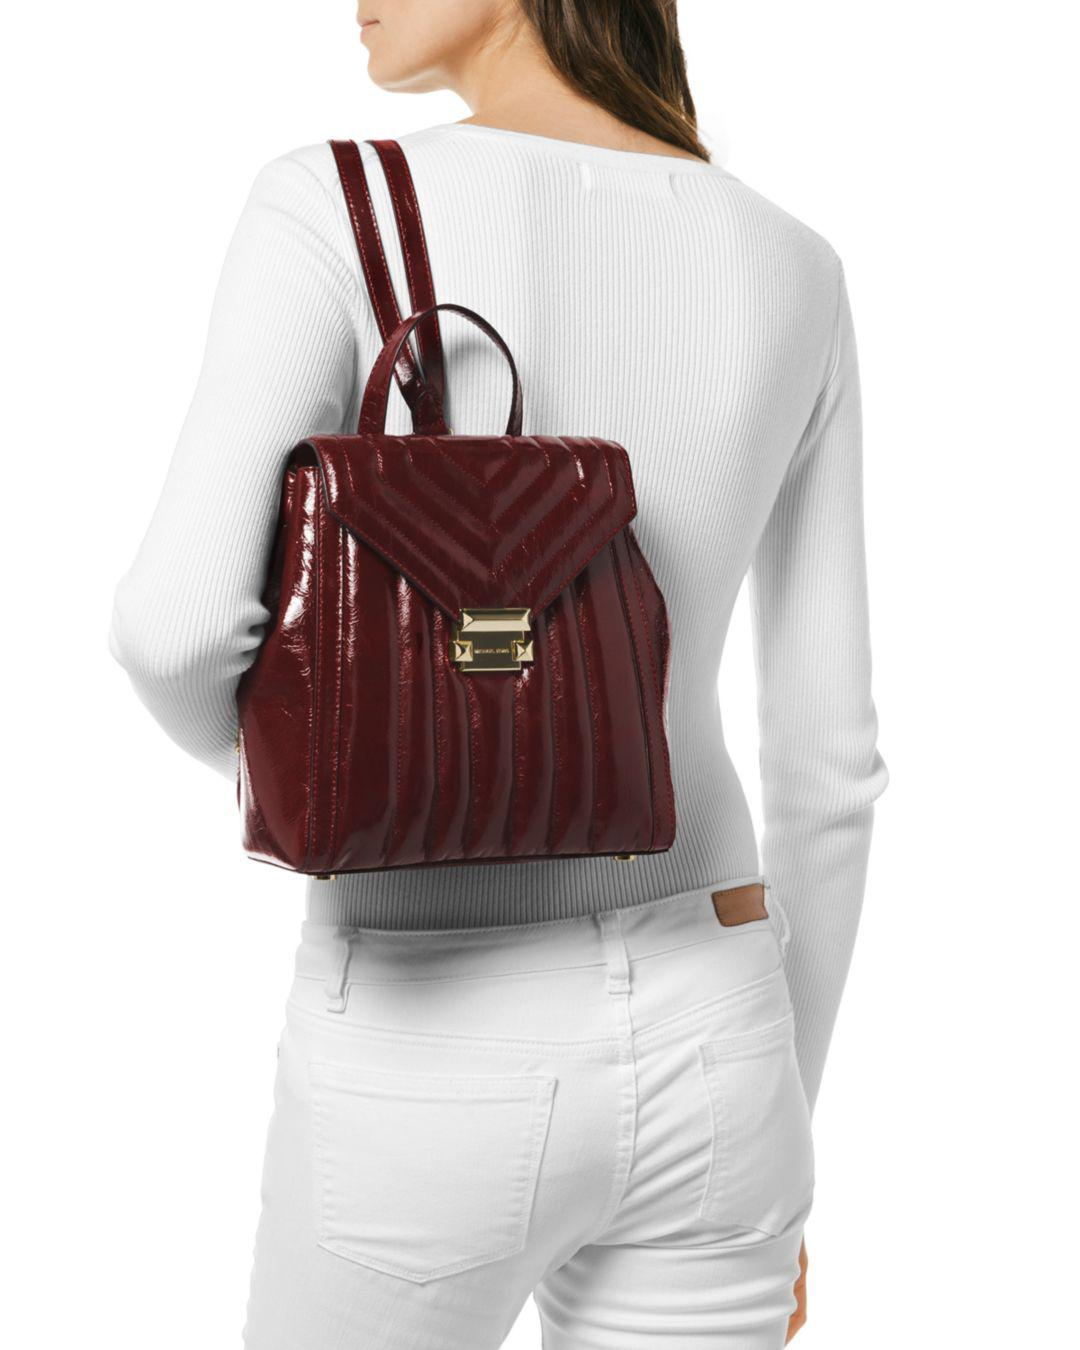 cb8a718308c5 MICHAEL Michael Kors Whitney Medium Leather Backpack in Red - Lyst